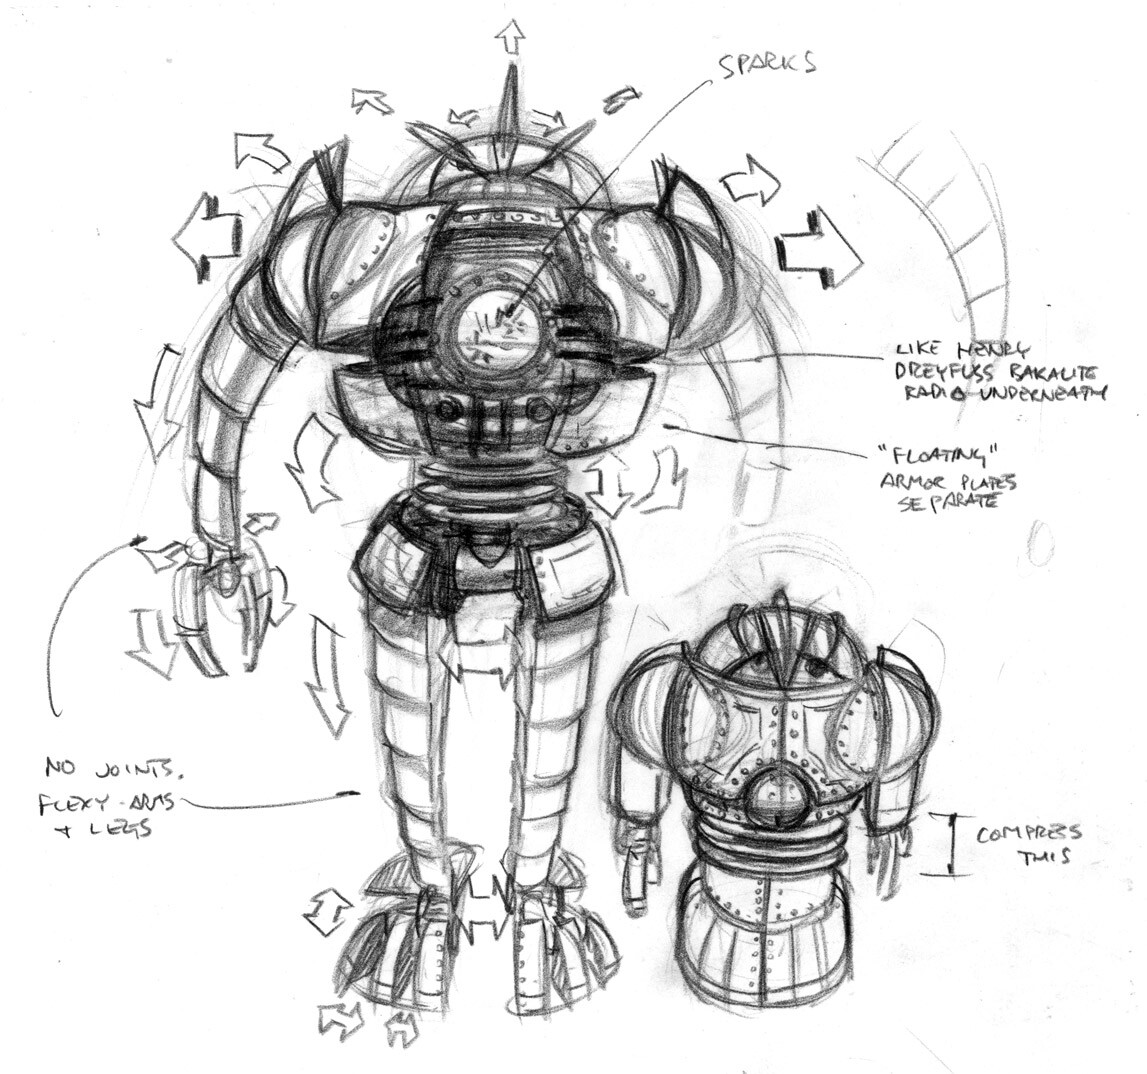 Transformation sketch showing how the earlier concept could expand mechanically from a small wind-up toy to the menacing final robot.